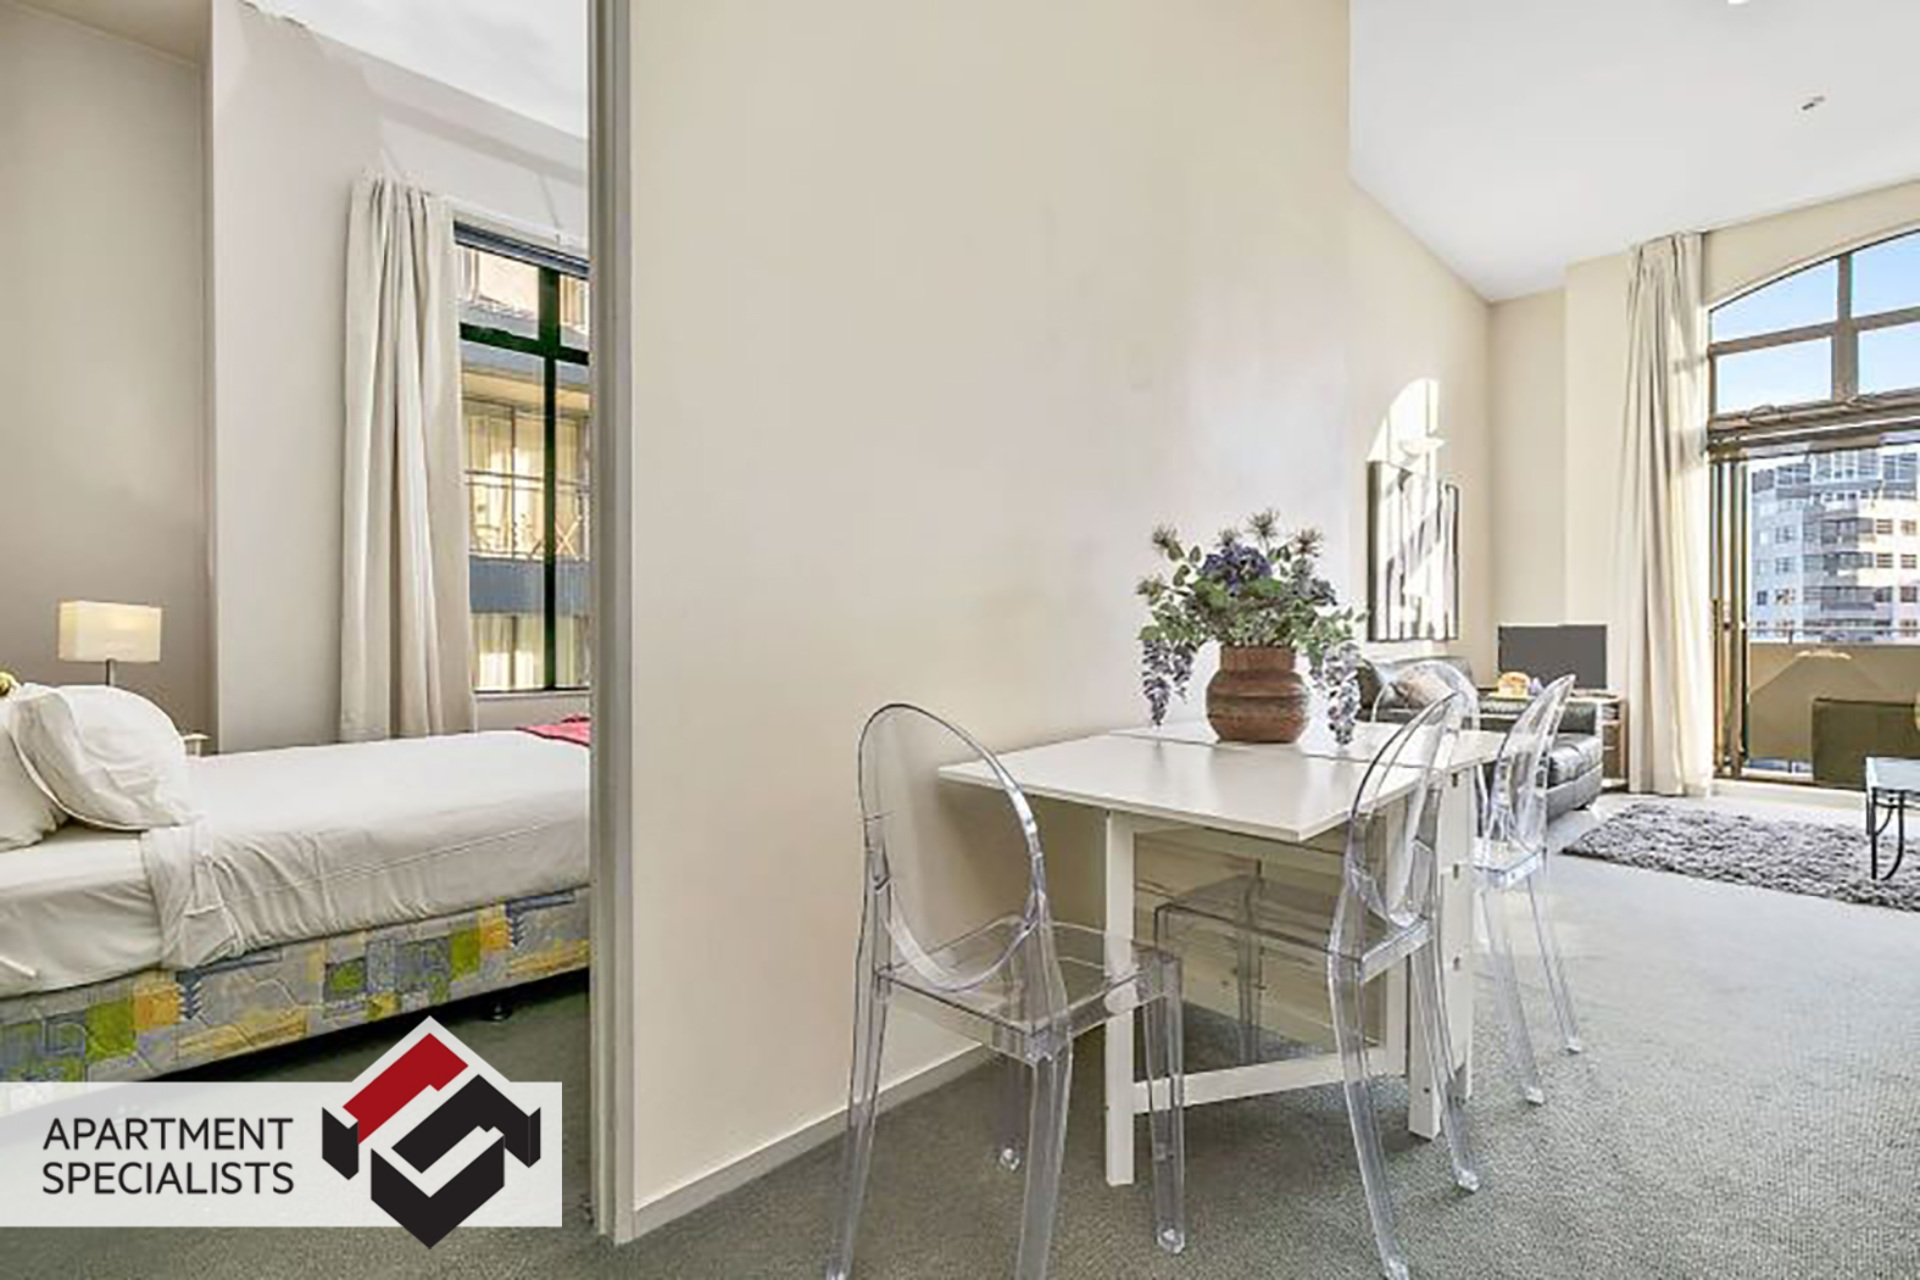 7 | 50 Eden Crescent, City Centre | Apartment Specialists